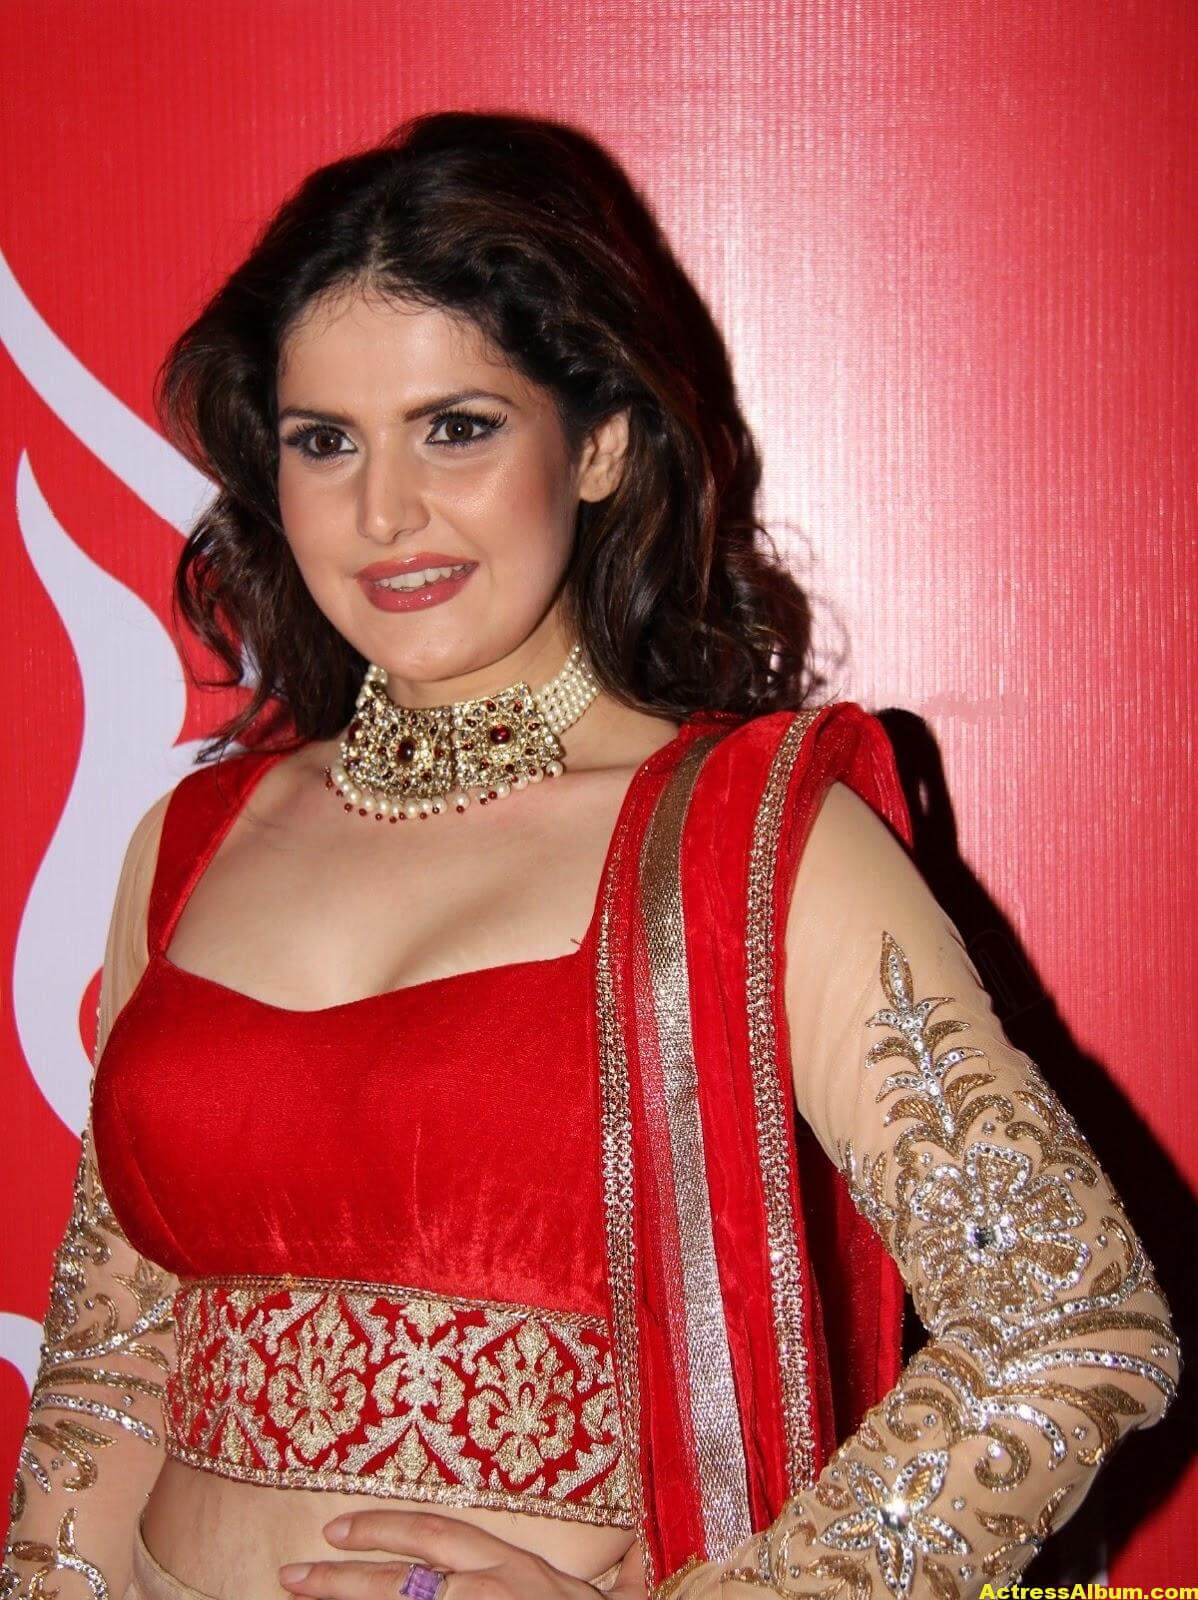 Zarine Khan Hot Photoshoot In Red Dress 2